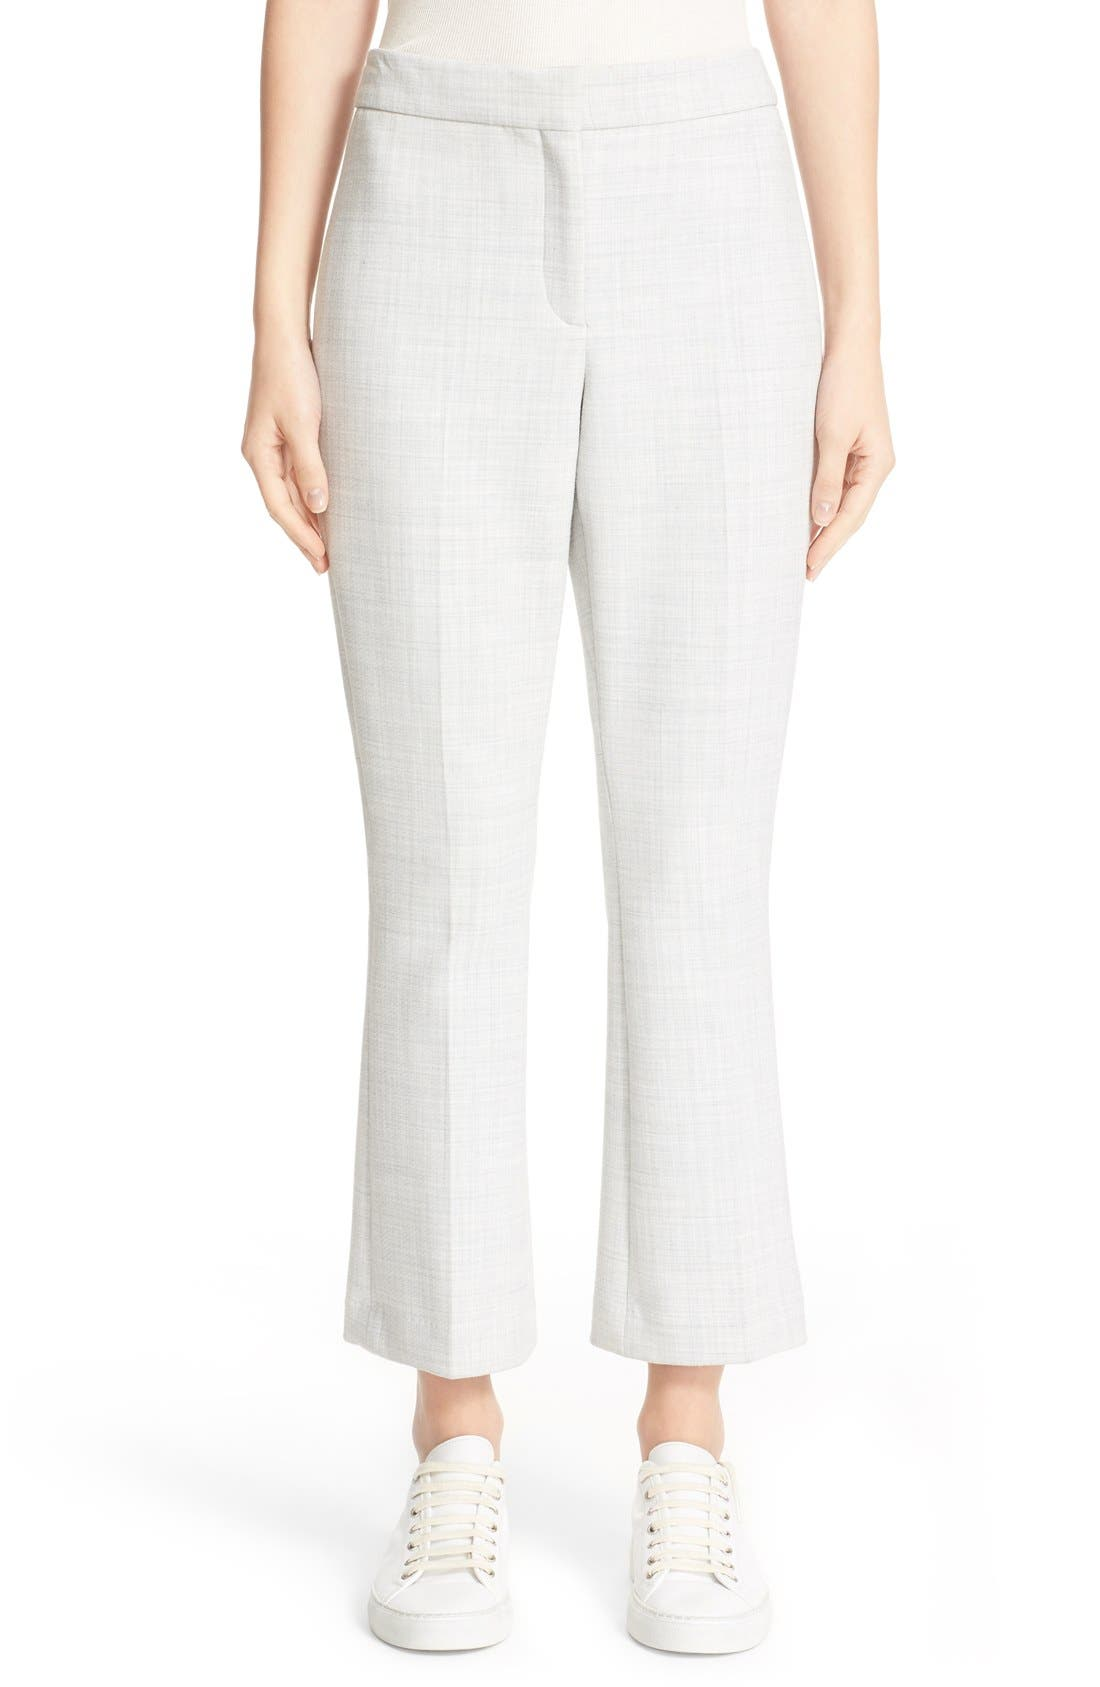 THEORY,                             'Erstina Pioneer' Crop Flare Leg Trousers,                             Main thumbnail 1, color,                             050